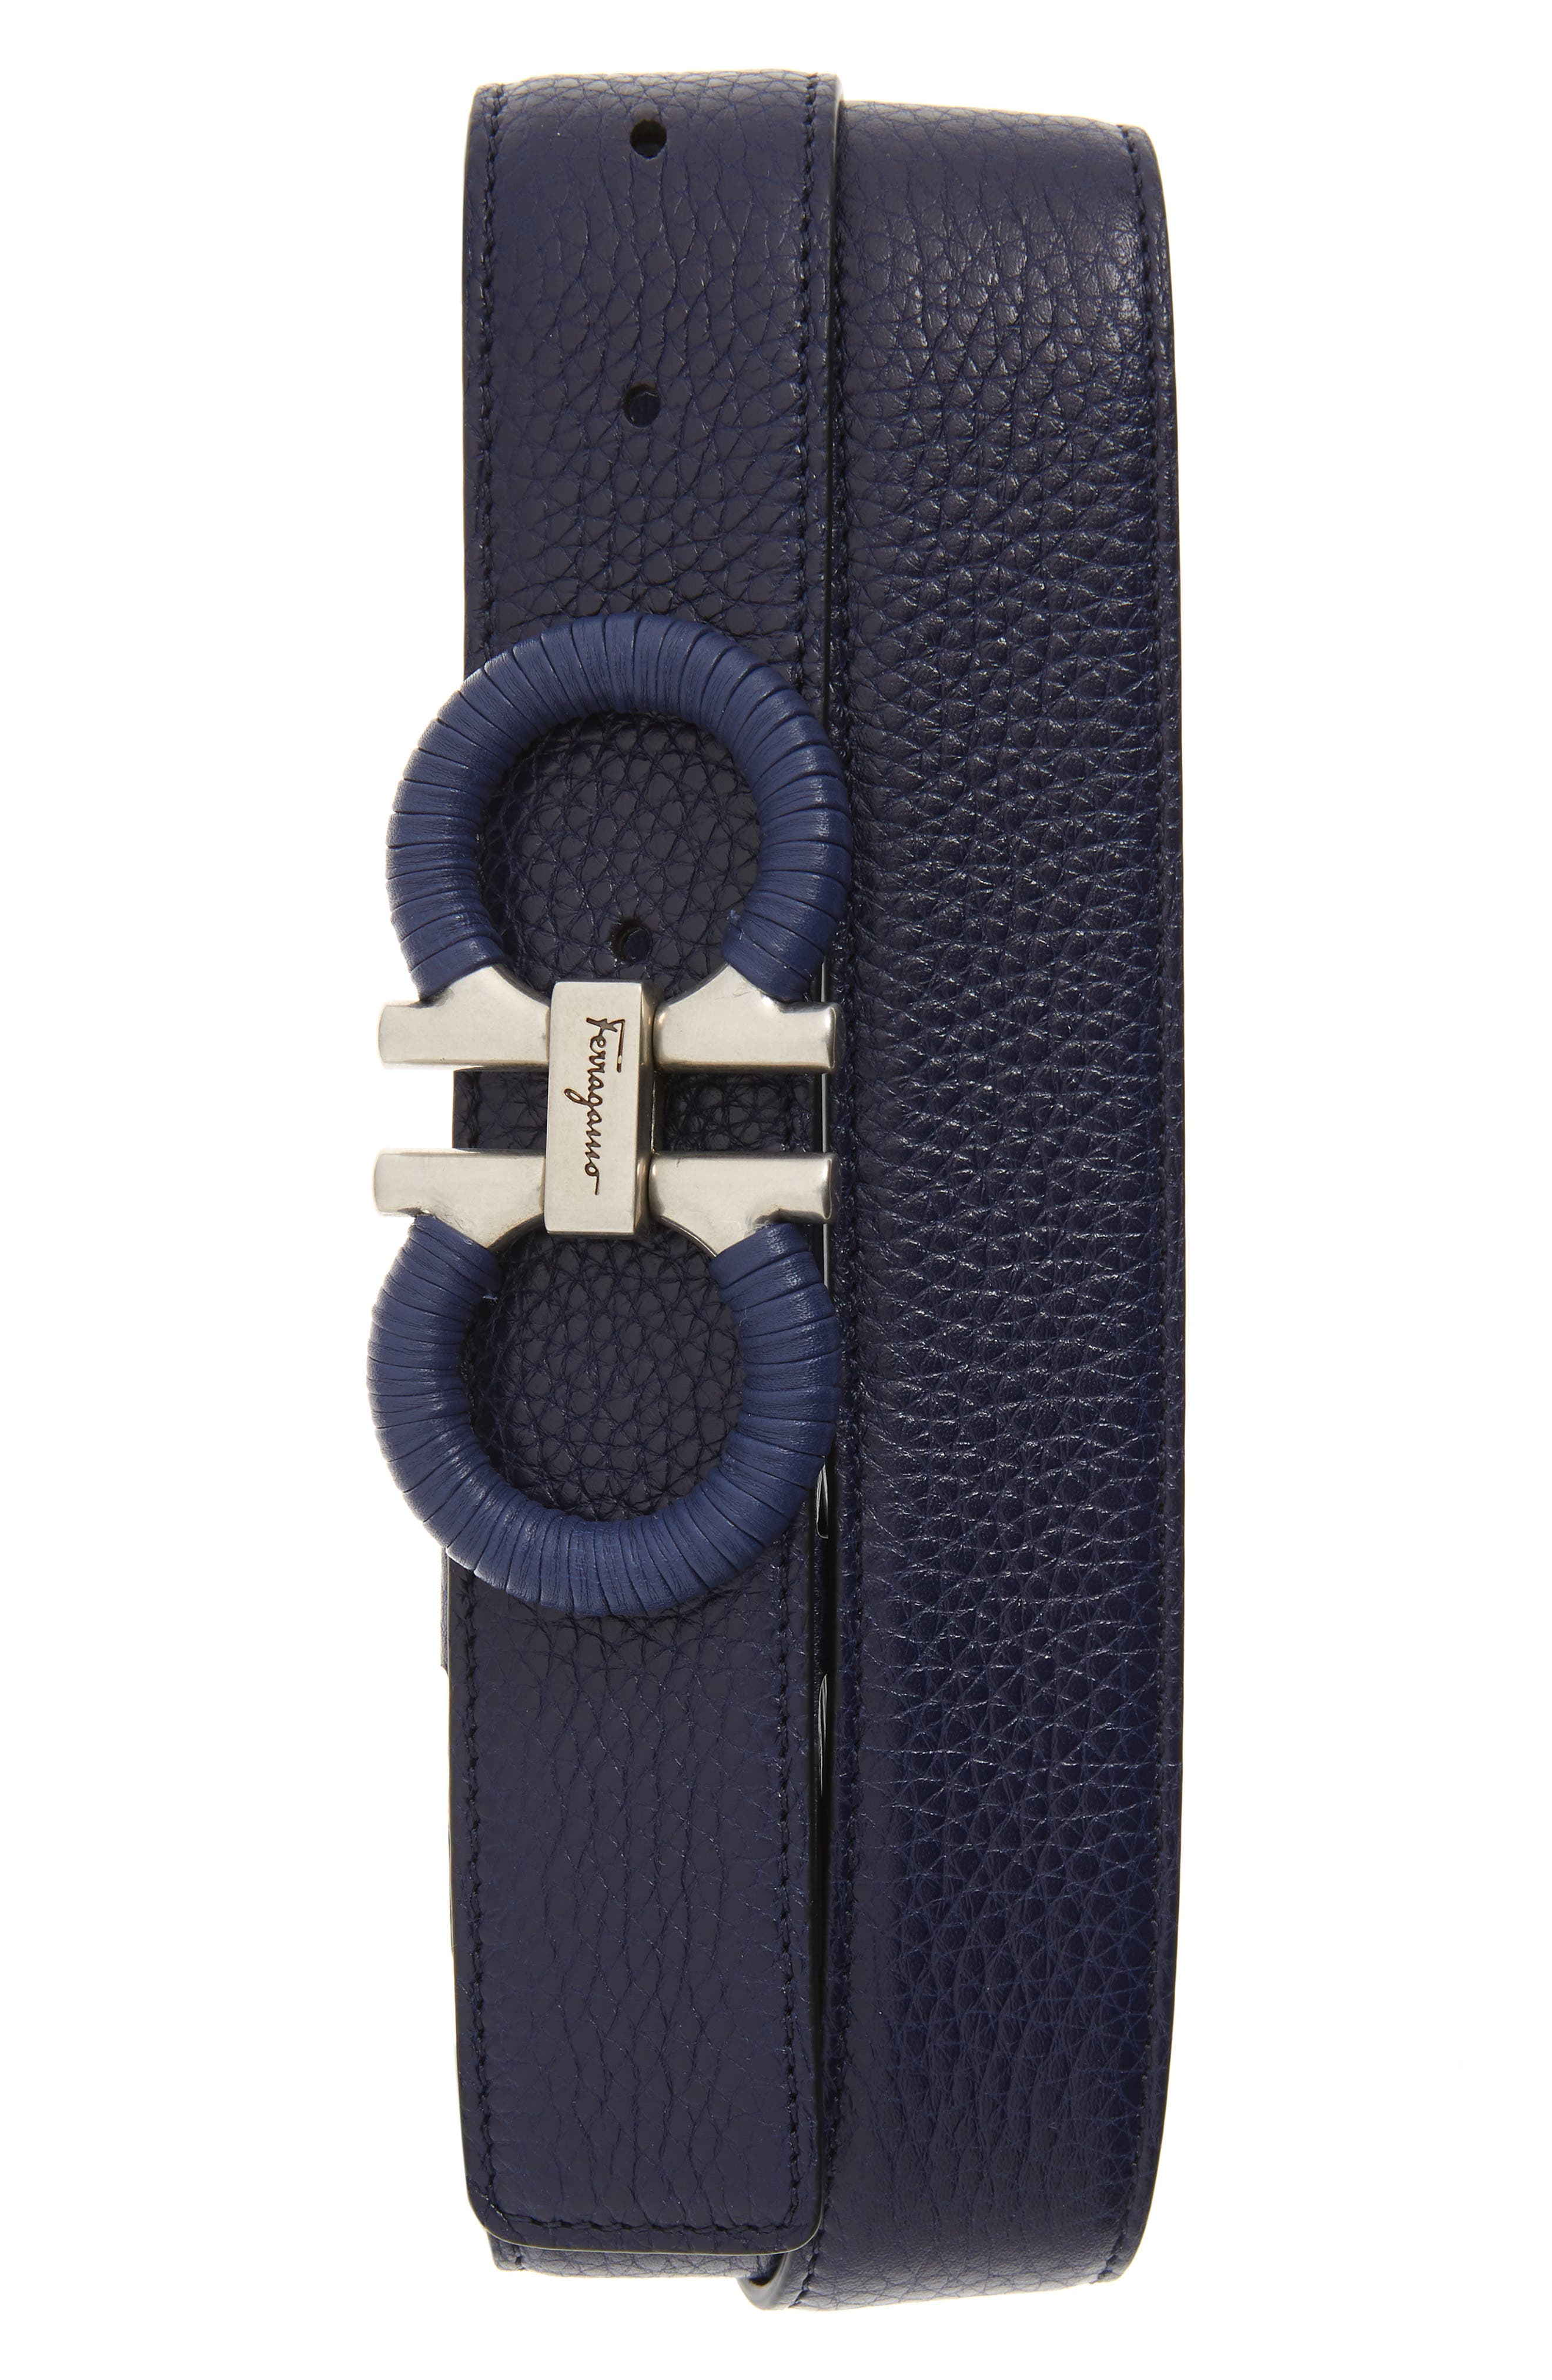 SALVATORE FERRAGAMO, Textured & Smooth Leather Belt, Main thumbnail 1, color, CADET BLUE